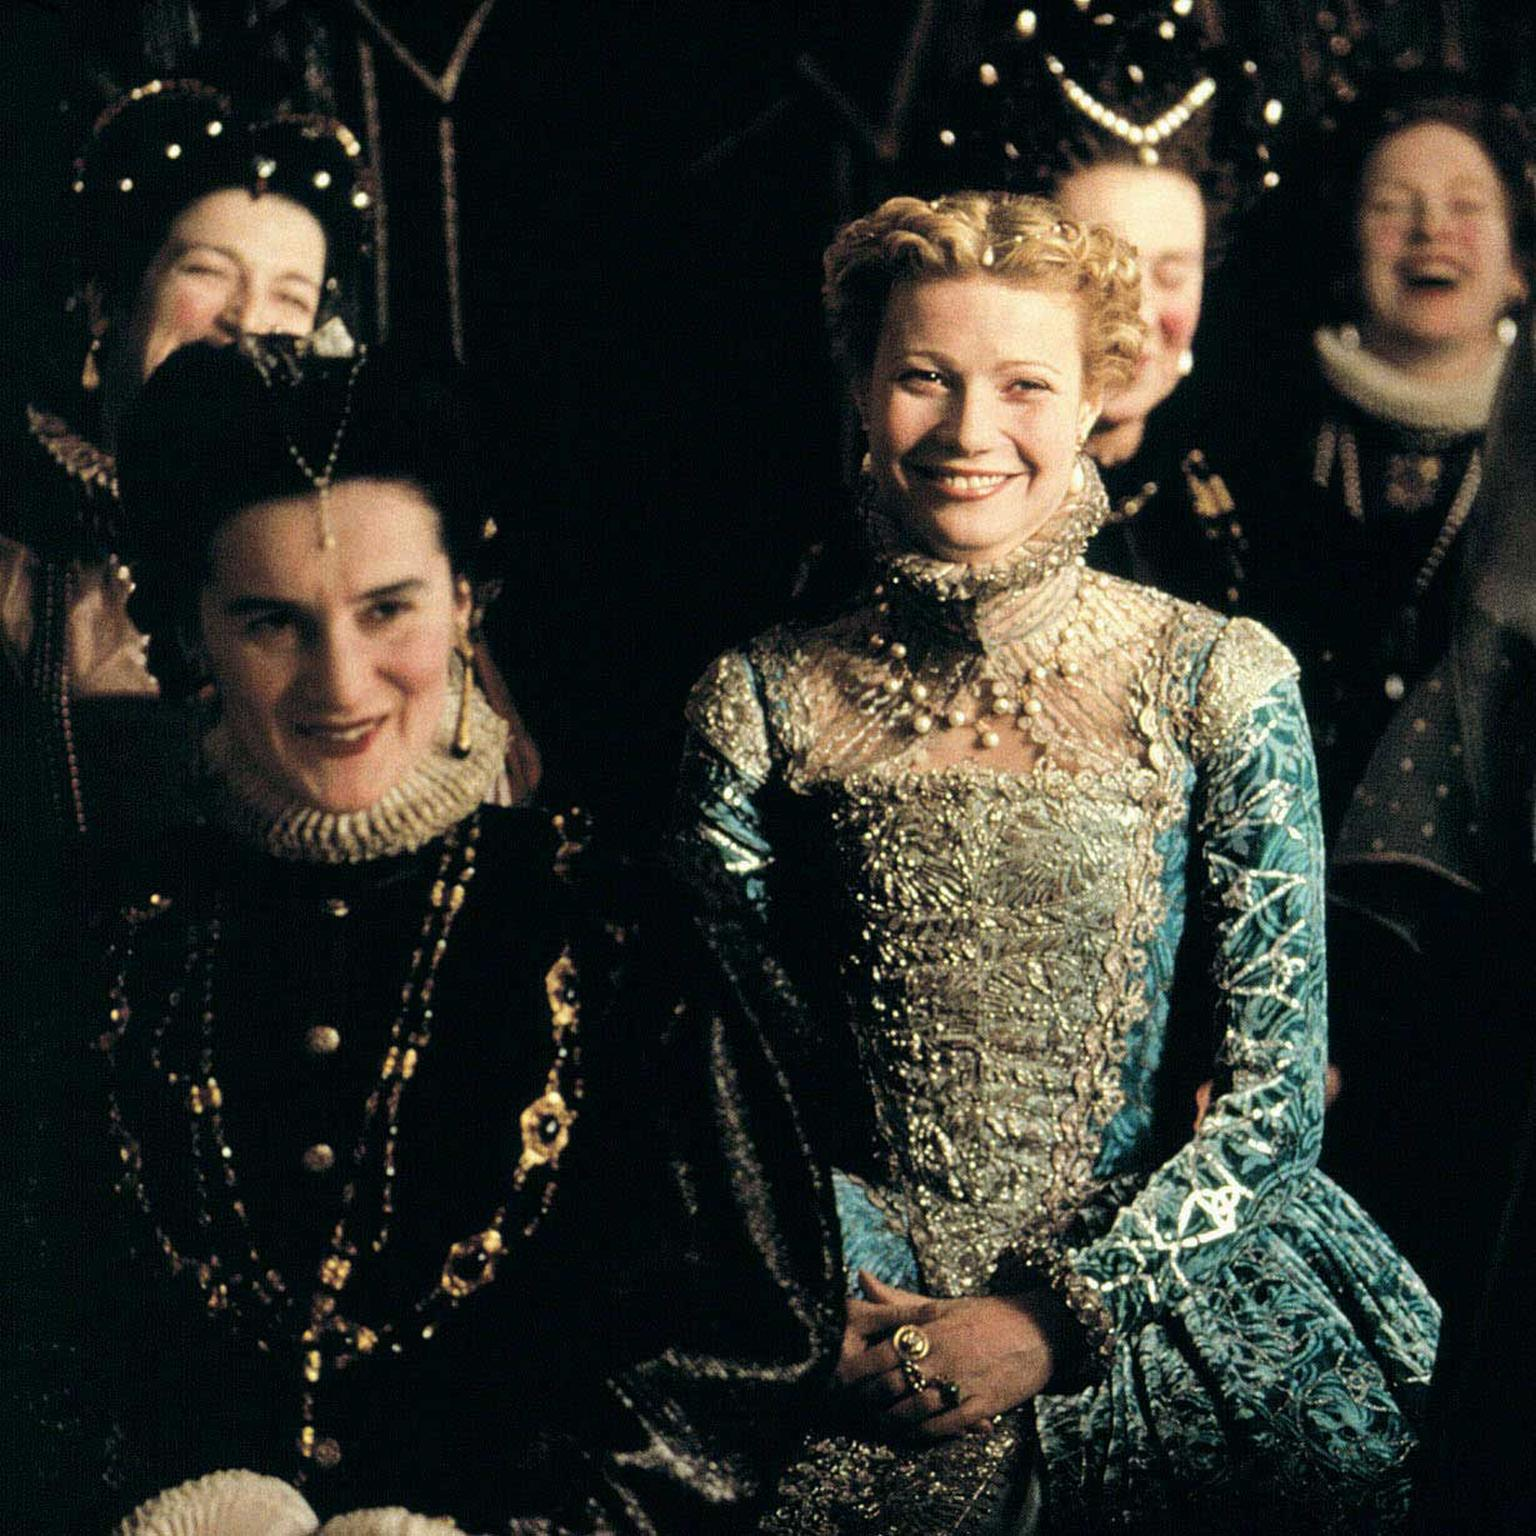 Gwyneth Paltrow models the jewels of the Era in the film Shakespeare in Love